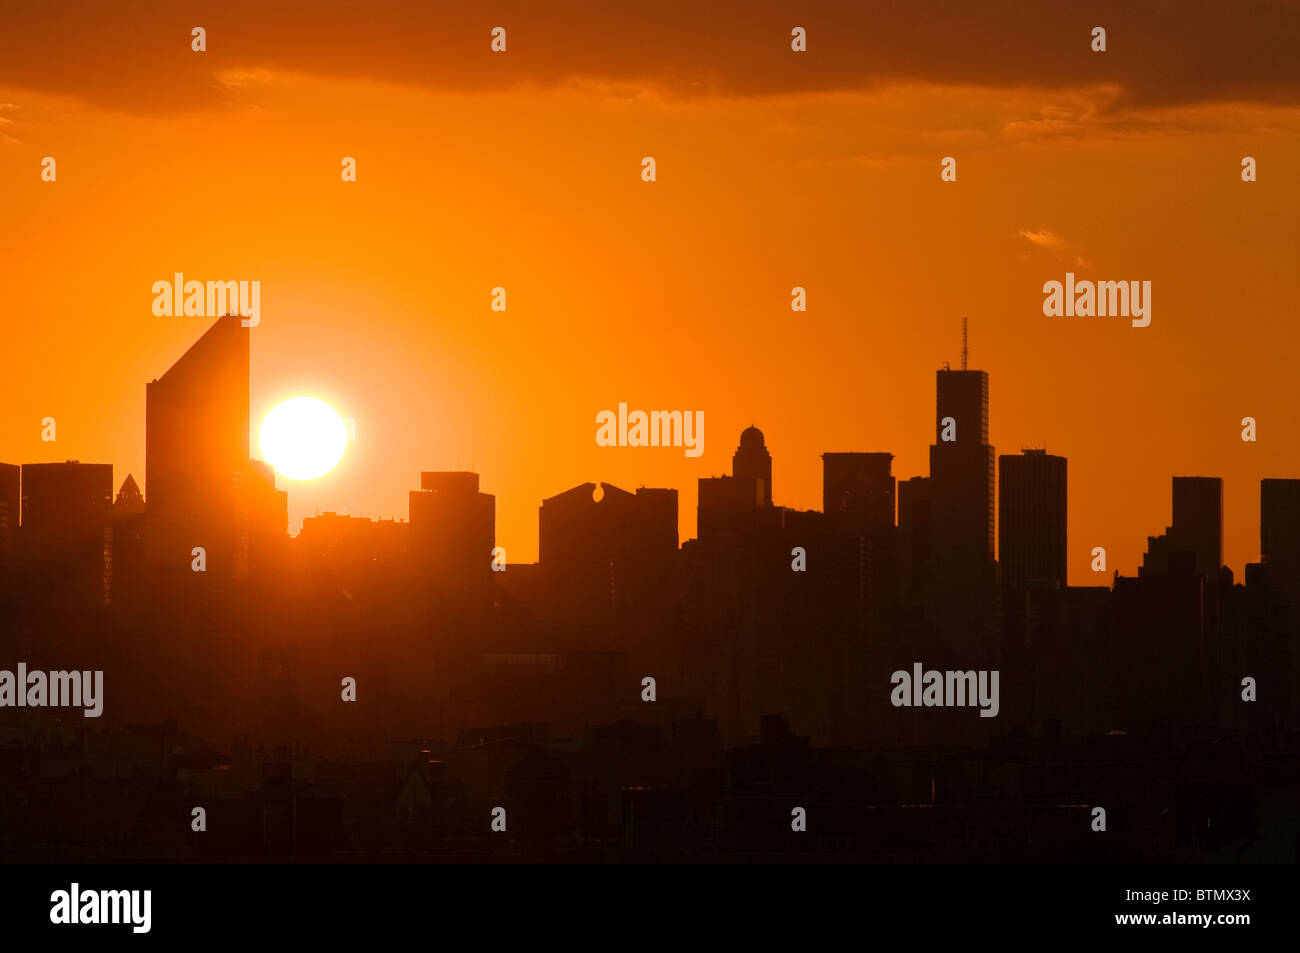 Skyline of Midtown Manhattan with the Citicorp Center, at sunset, New York City. - Stock Image